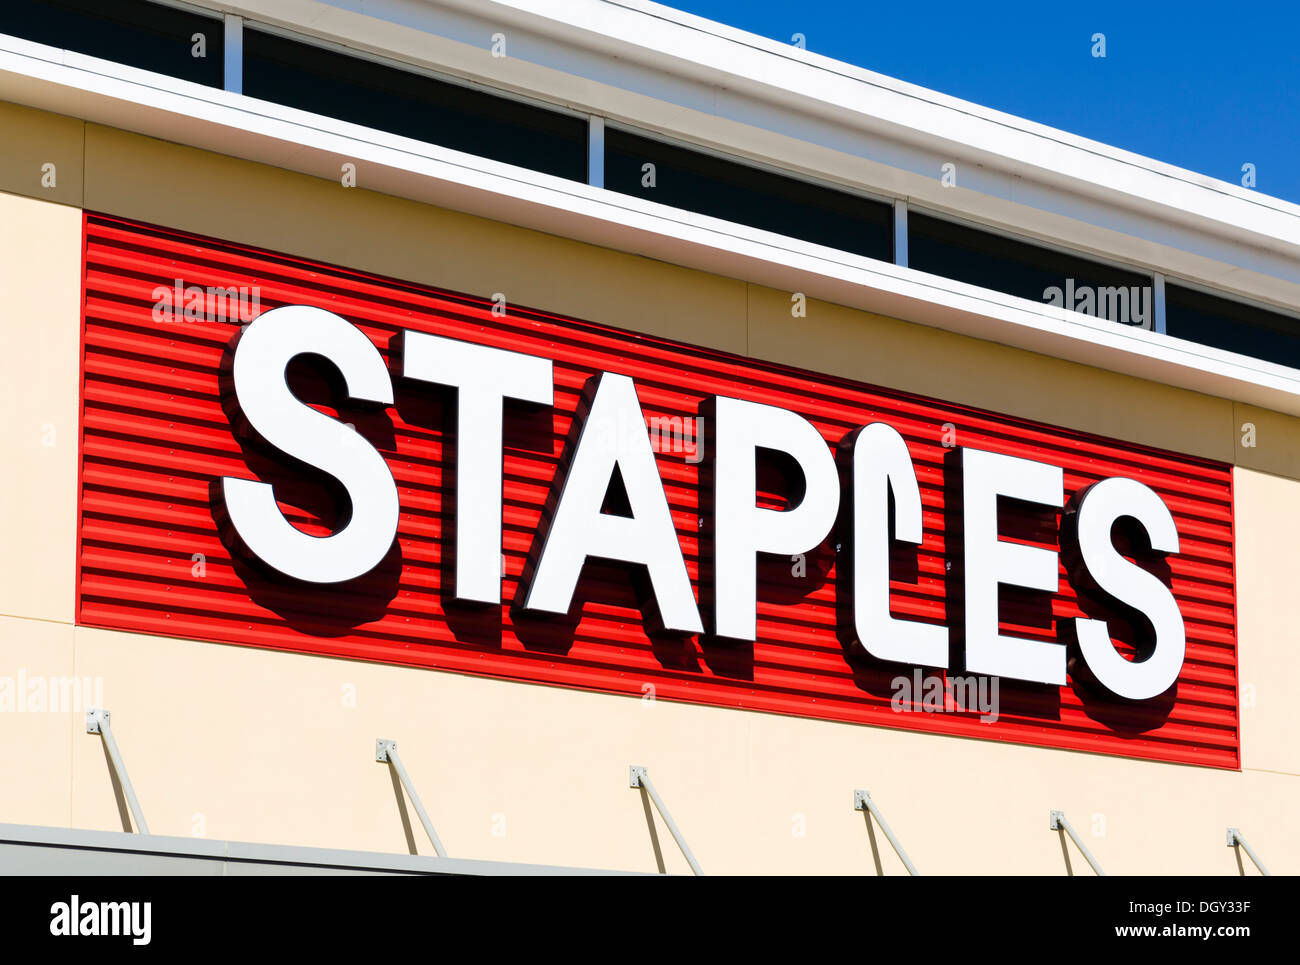 Staples Store, Posner Park, near Haines City, Central Florida, USA - Stock Image